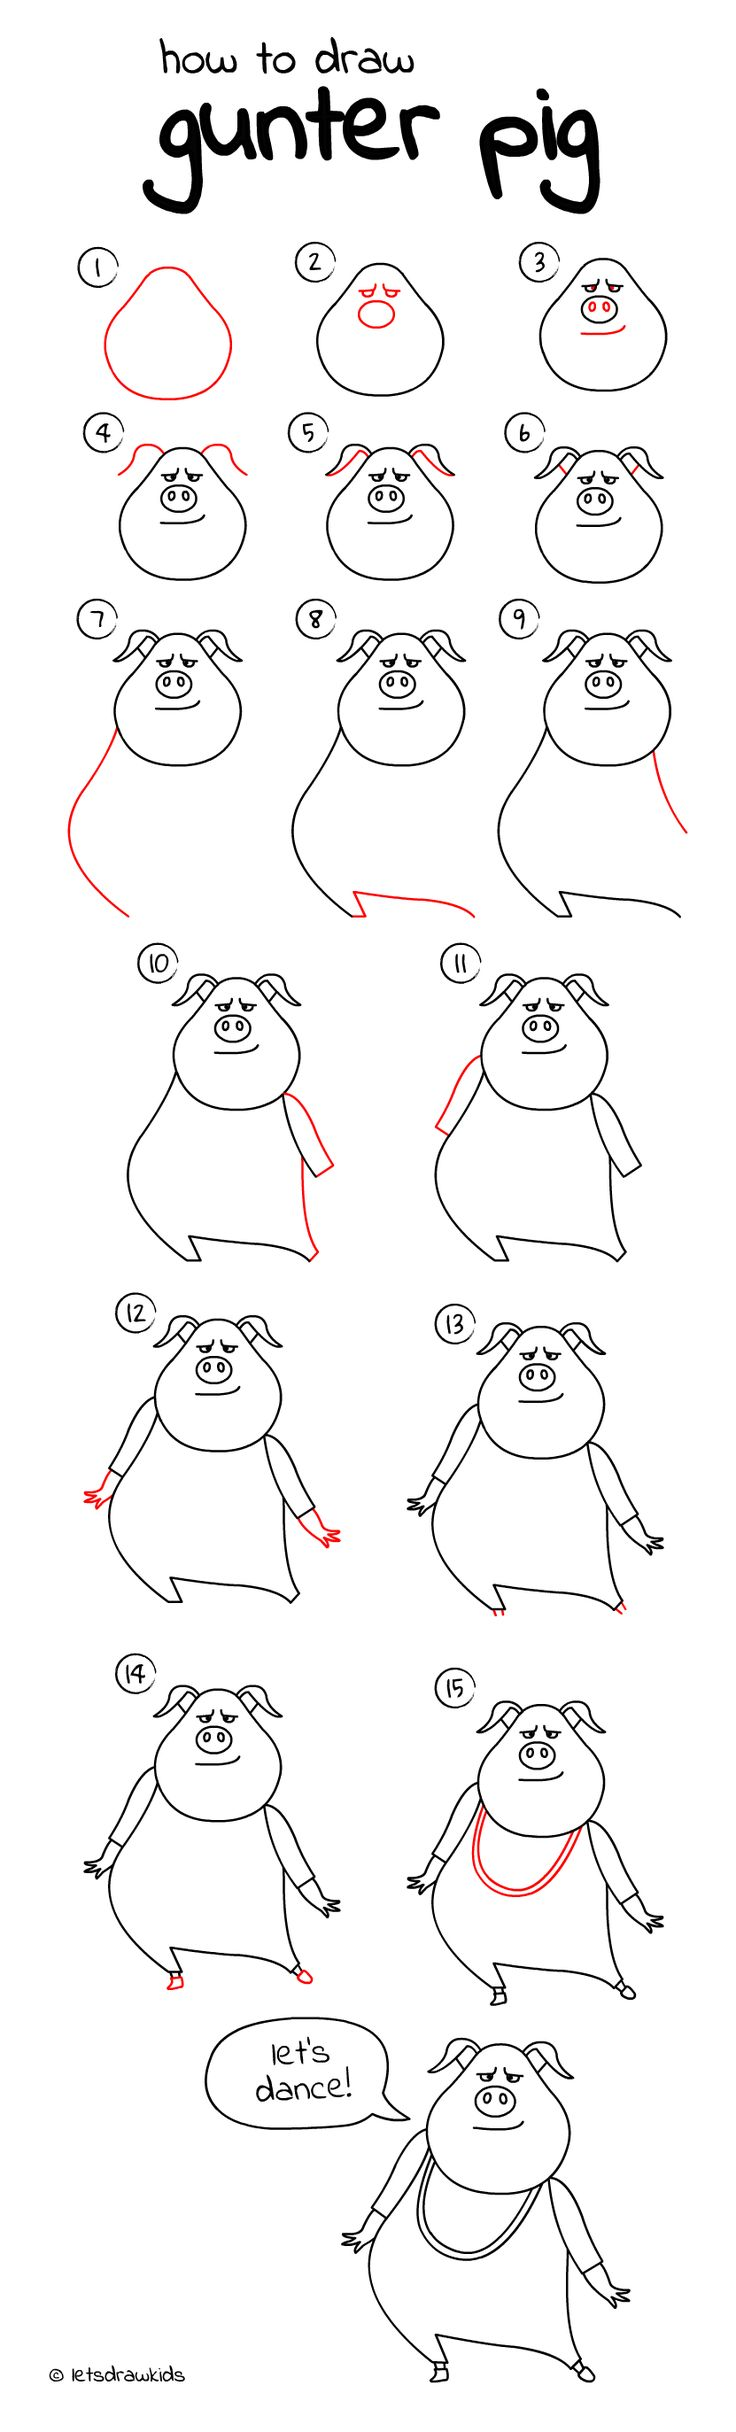 How to draw Gunter. Easy drawing, step by step, perfect for kids! Let's draw kids. http://letsdrawkids.com/